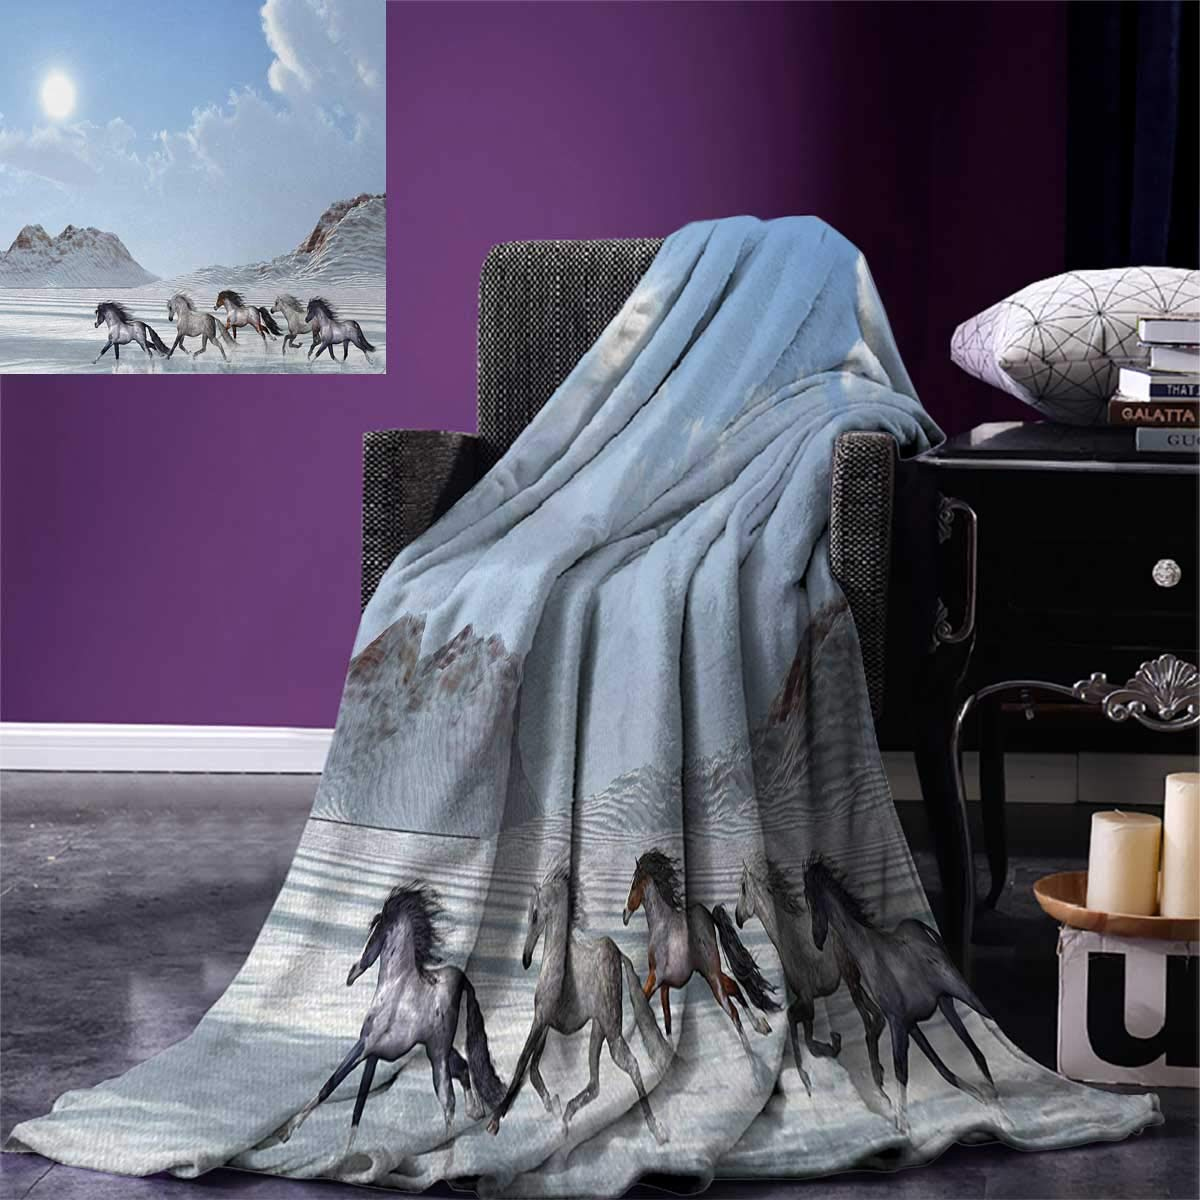 Horses Digital Printing Blanket Herd of Wild Noble Horses Run in The Snows of a Fresh Winter Day Glorious Picture Summer Quilt Comforter 80''x60'' Blue White